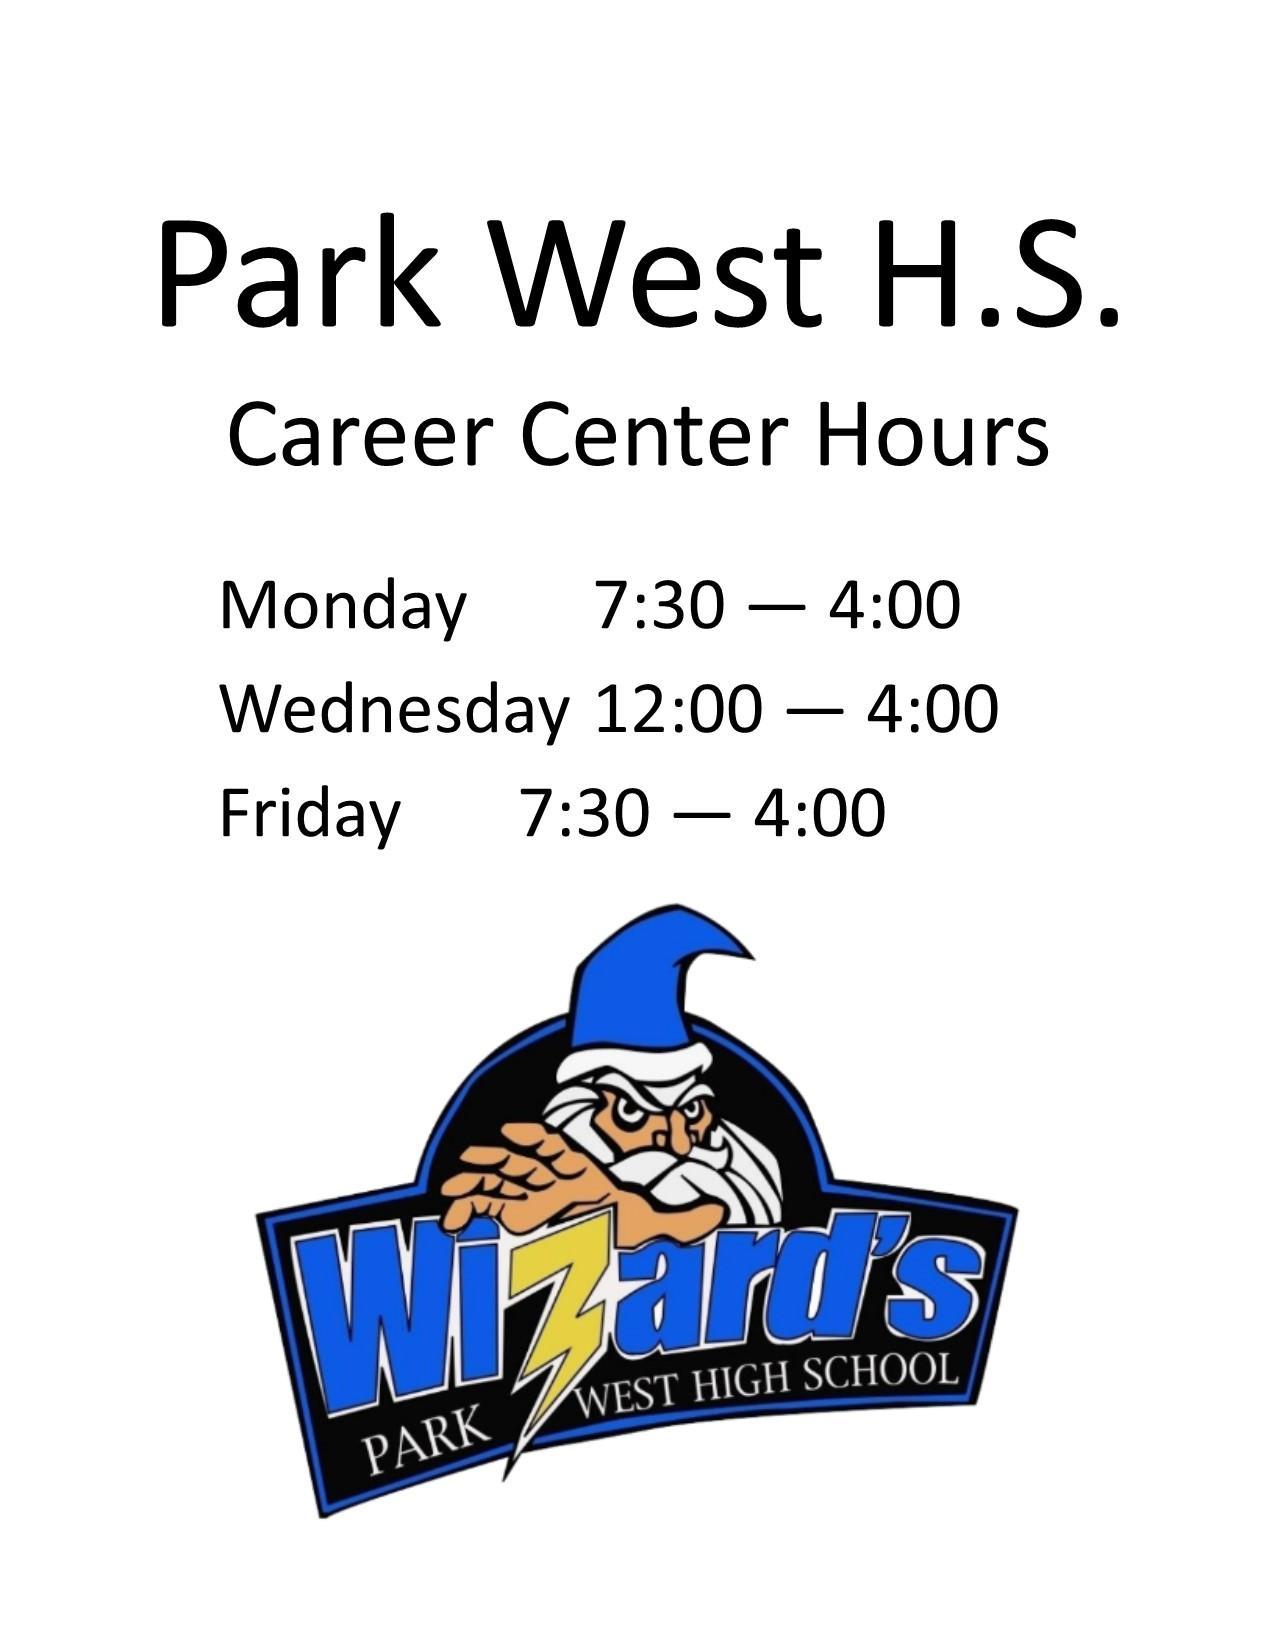 Park West High School Career Center Hours, Monday 7:30 am — 4:00 pm, Wednesday 12:00 pm — 4:00 pm, Friday 7:30 am — 4:00 pm